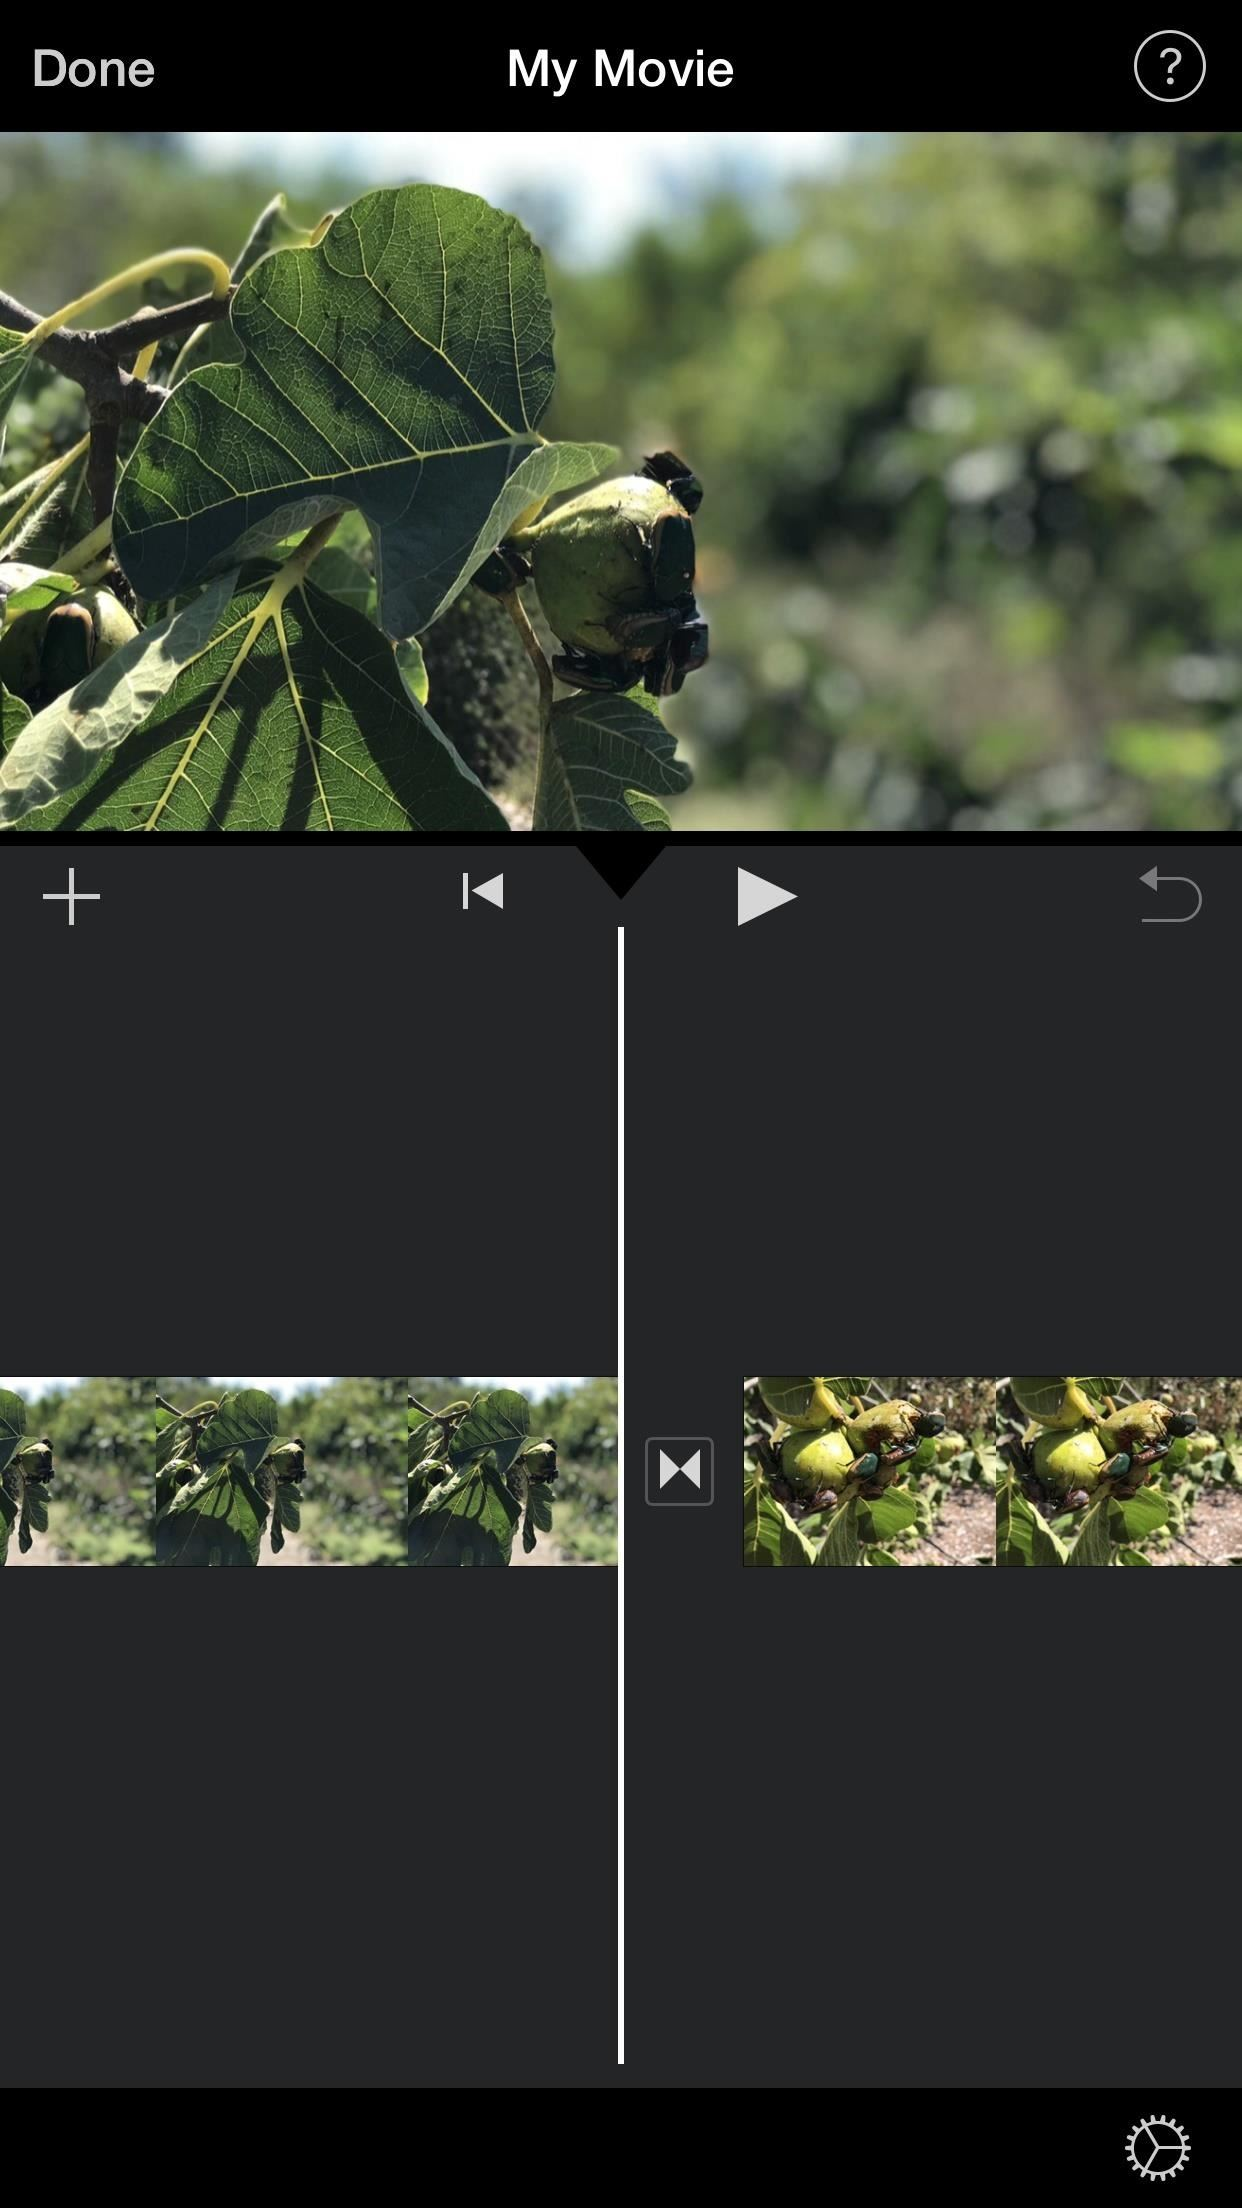 iMovie 101: How to Add More Photos to Your Movie Project